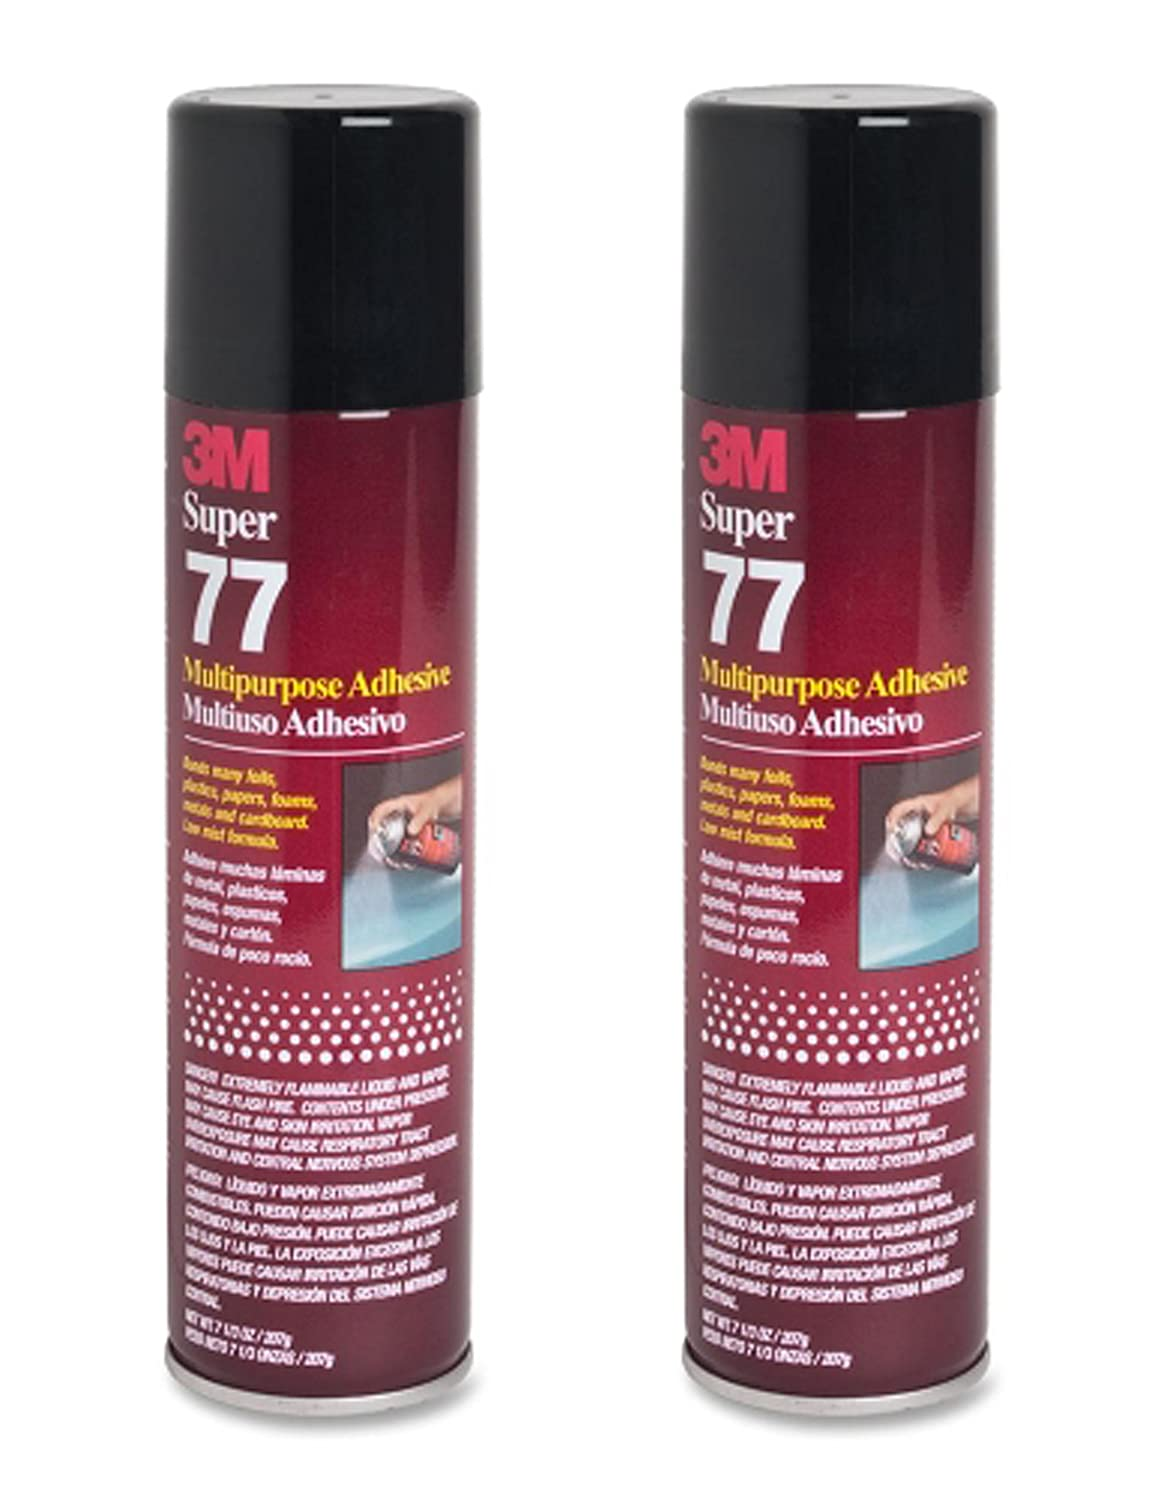 QTY2 3M SUPER 77 7.3OZ SPRAY GLUE ADHESIVE for FOIL PLASTIC PAPER FOAM METAL FABRIC